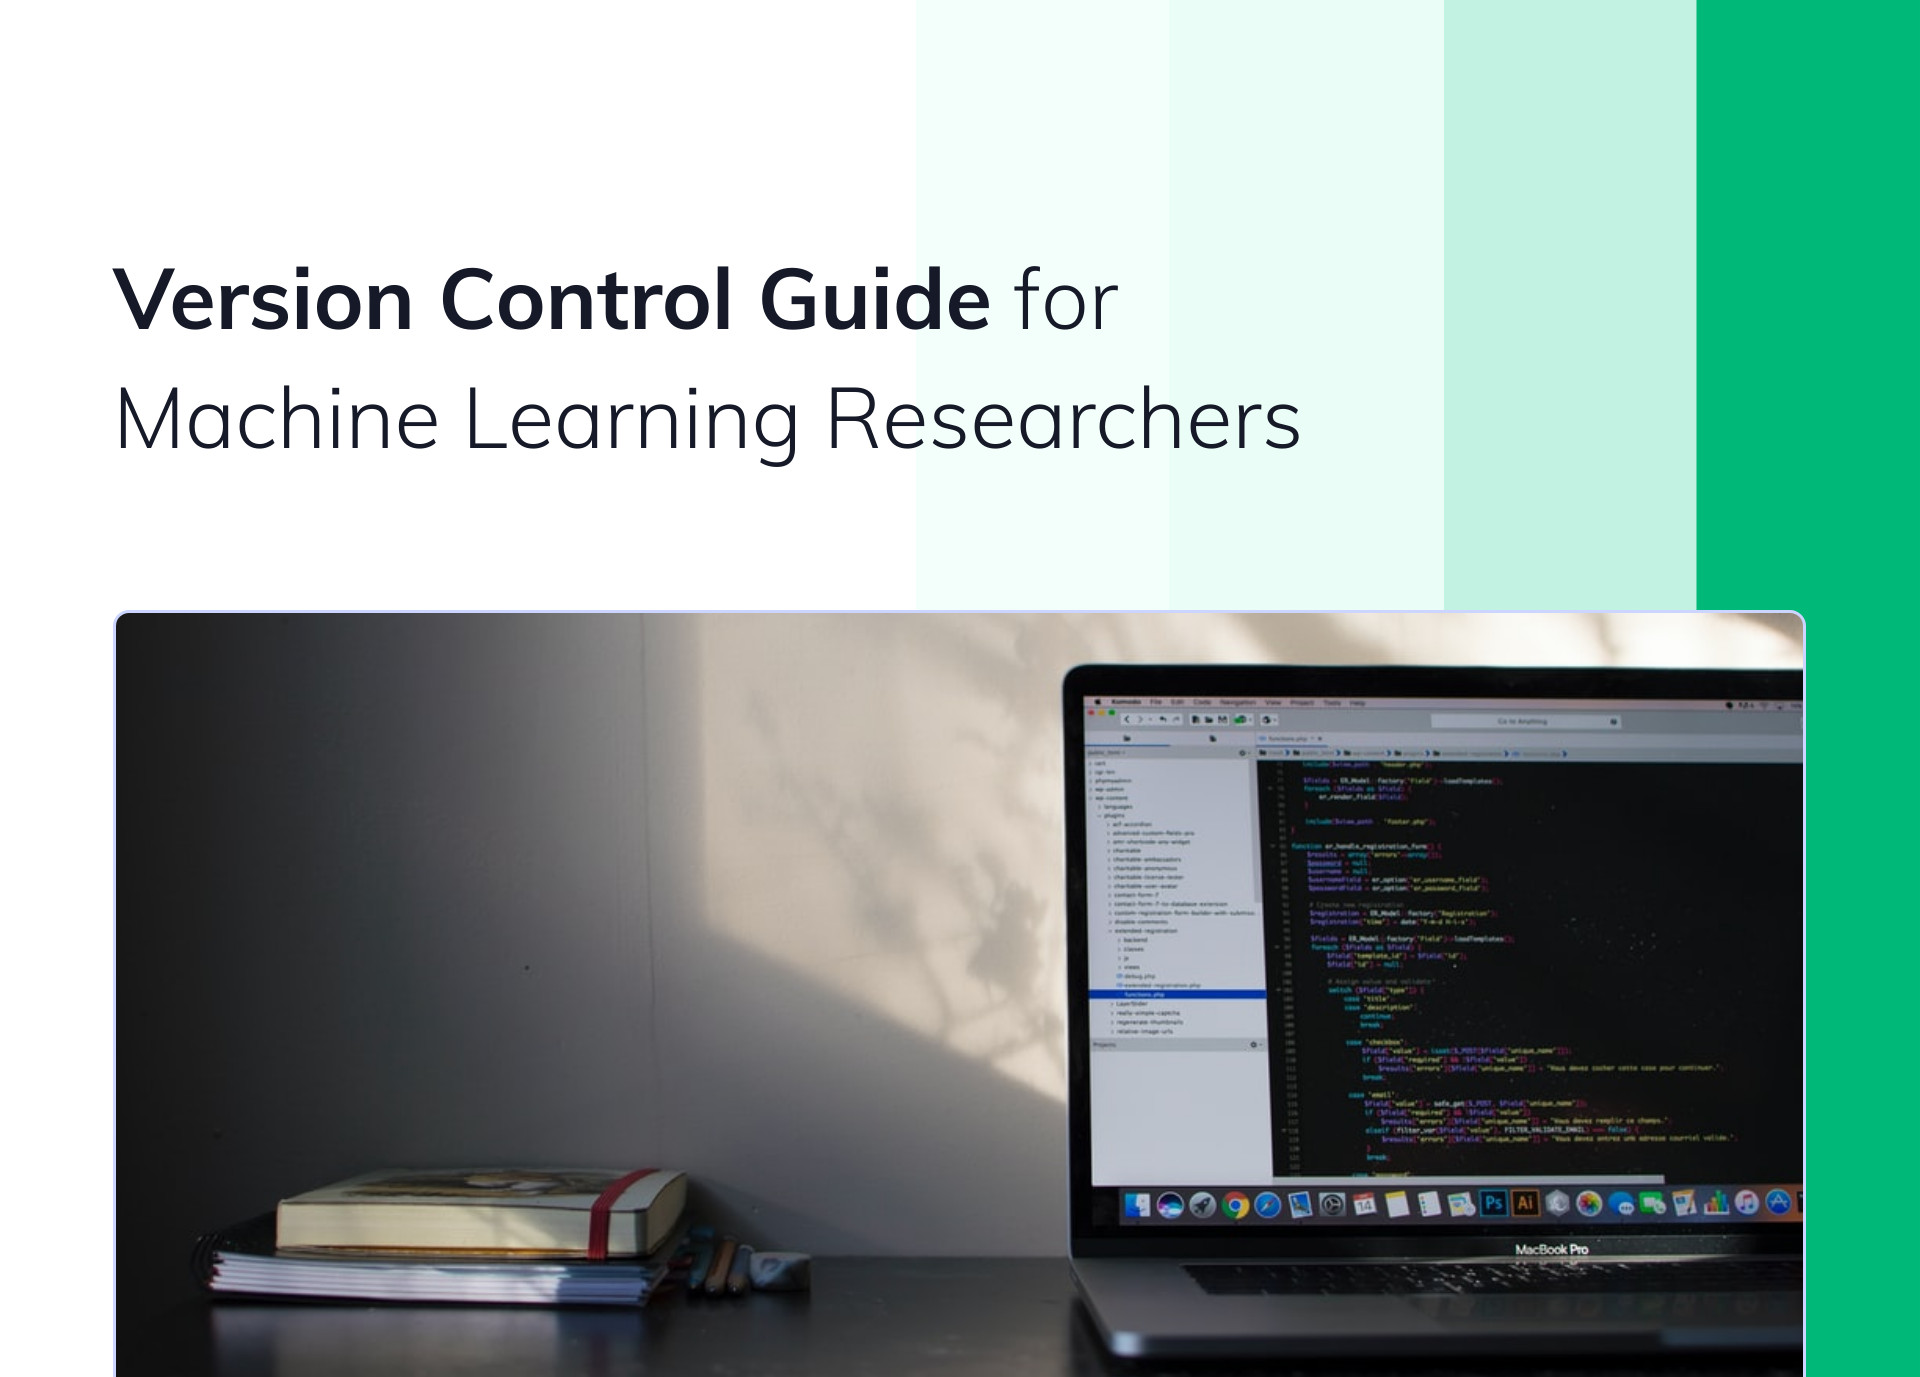 Version Control Guide for Machine Learning Researchers